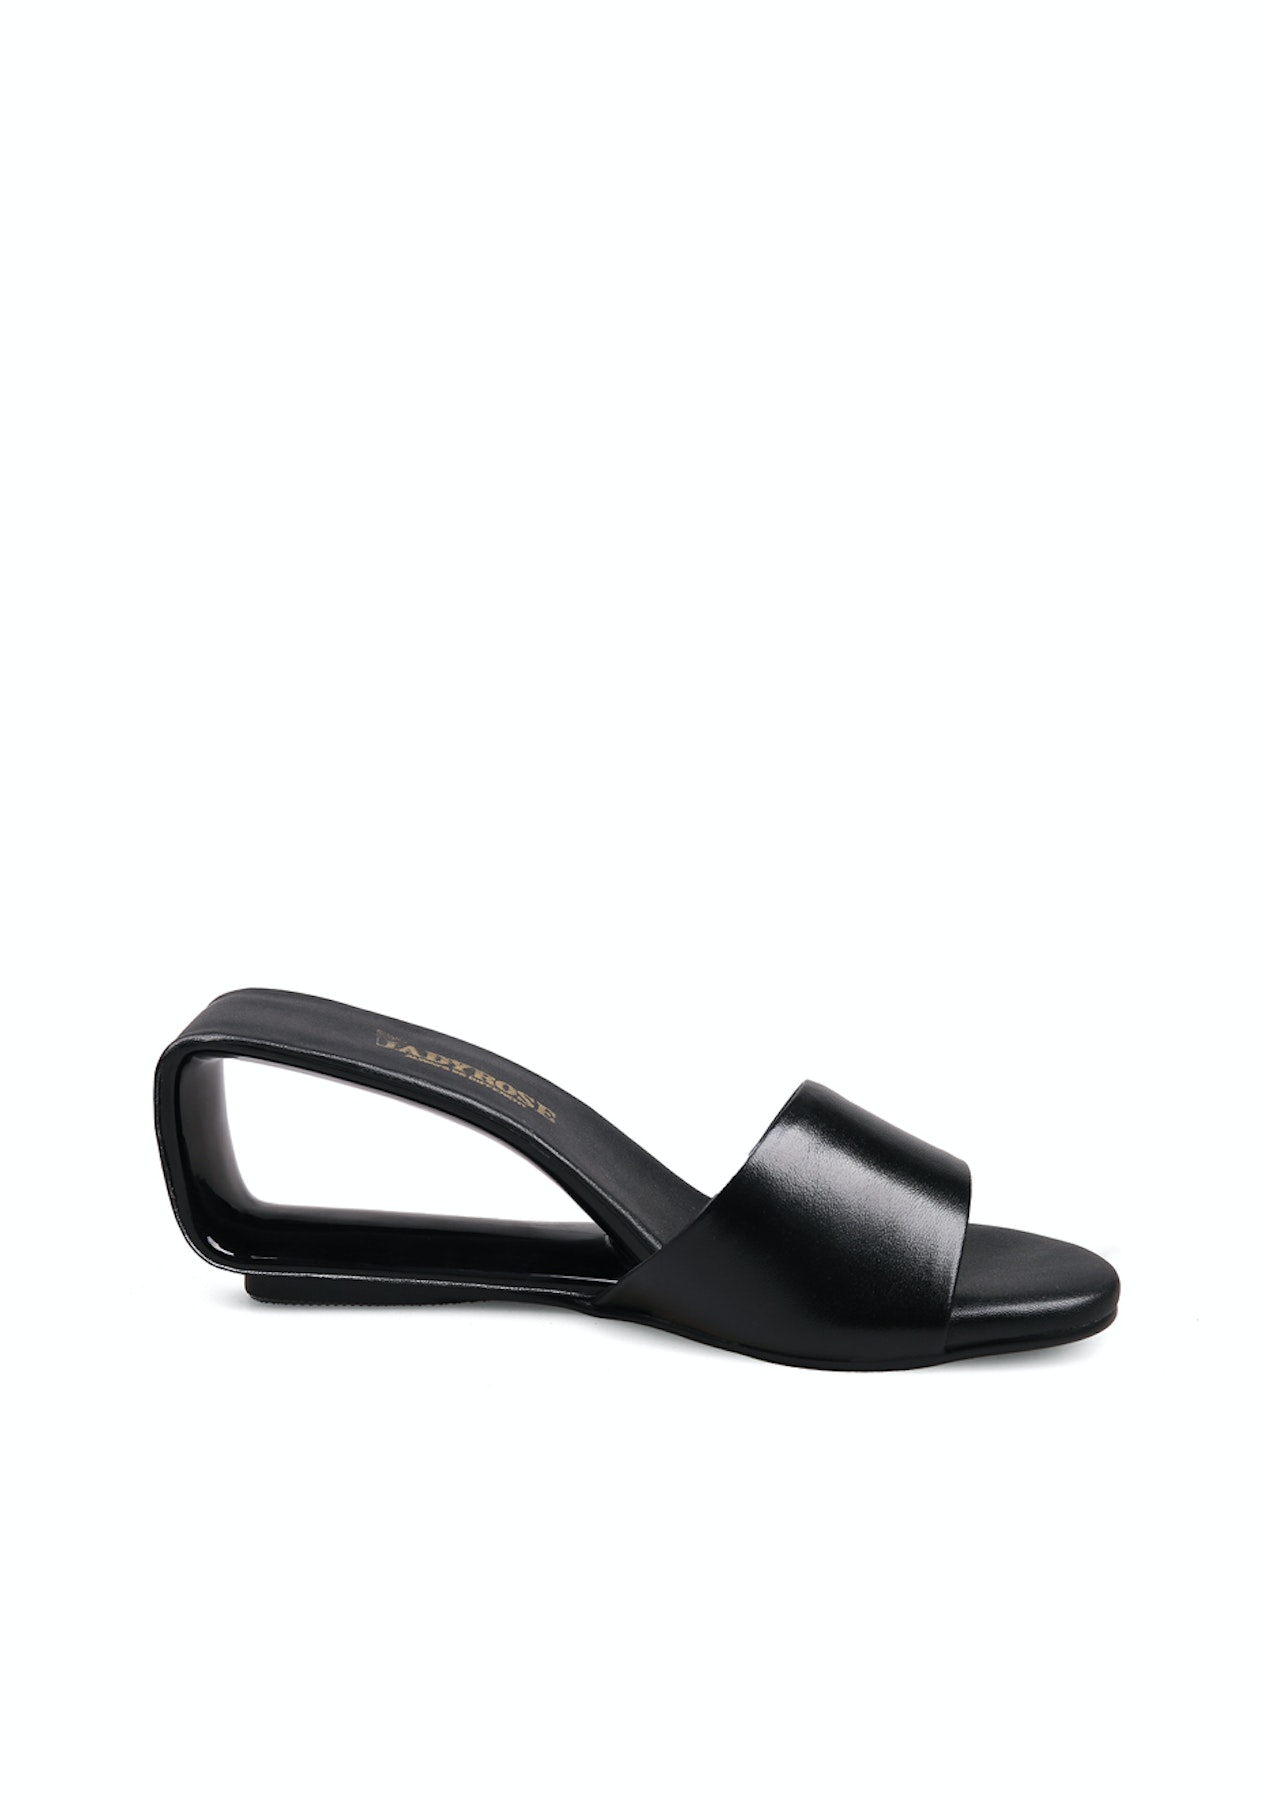 323e073a2a8 Jady Rose - Sandals - Black - Jady Rose Footwear Up to 77% Off - Onceit